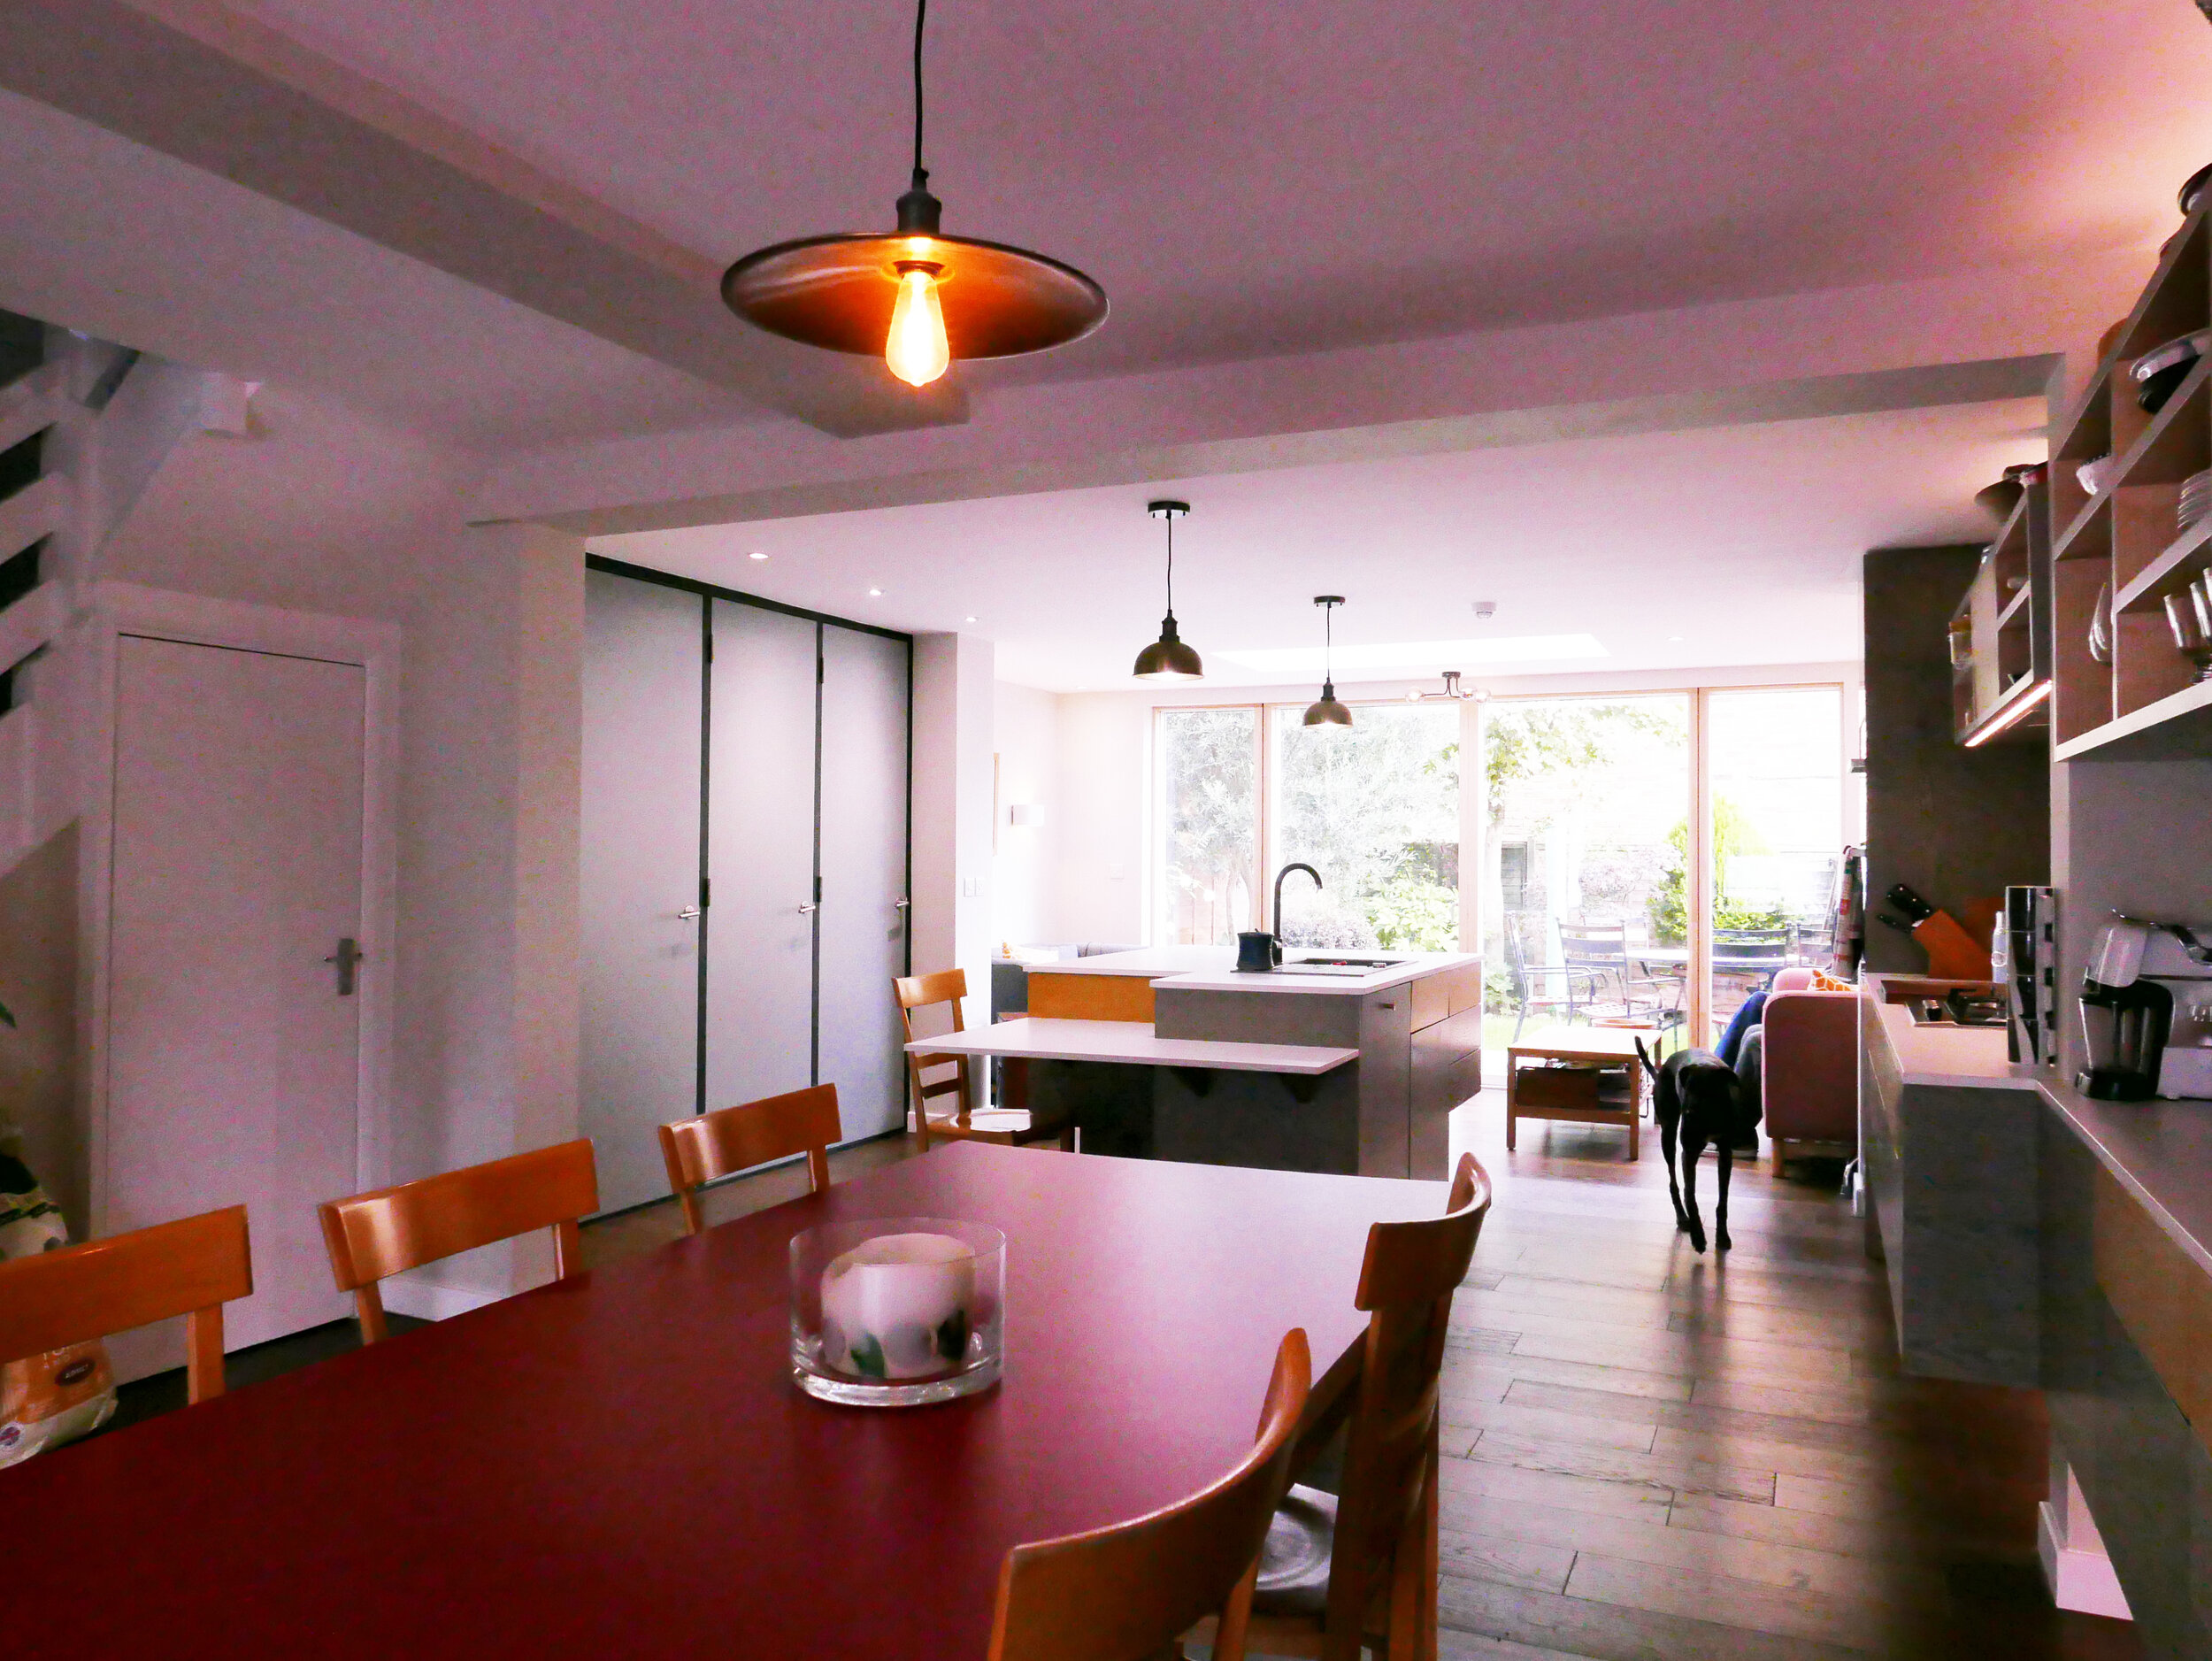 Upcycled Table Kitchen-Dining-Living Space South Woodford Architect and Design